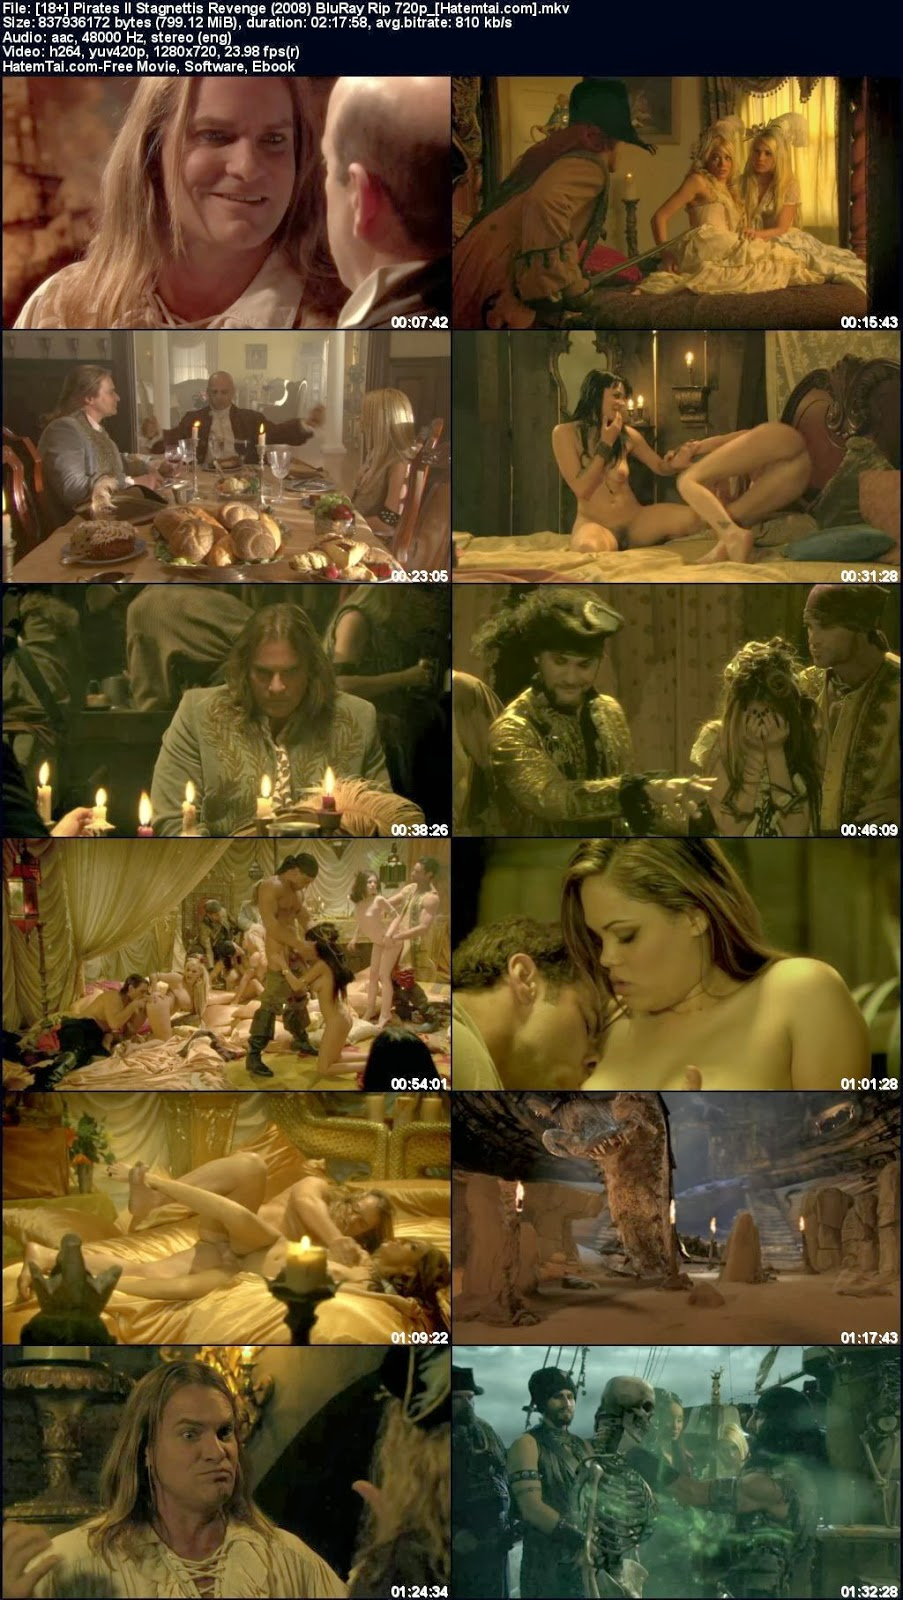 Pirates sex movie online free erotic scenes